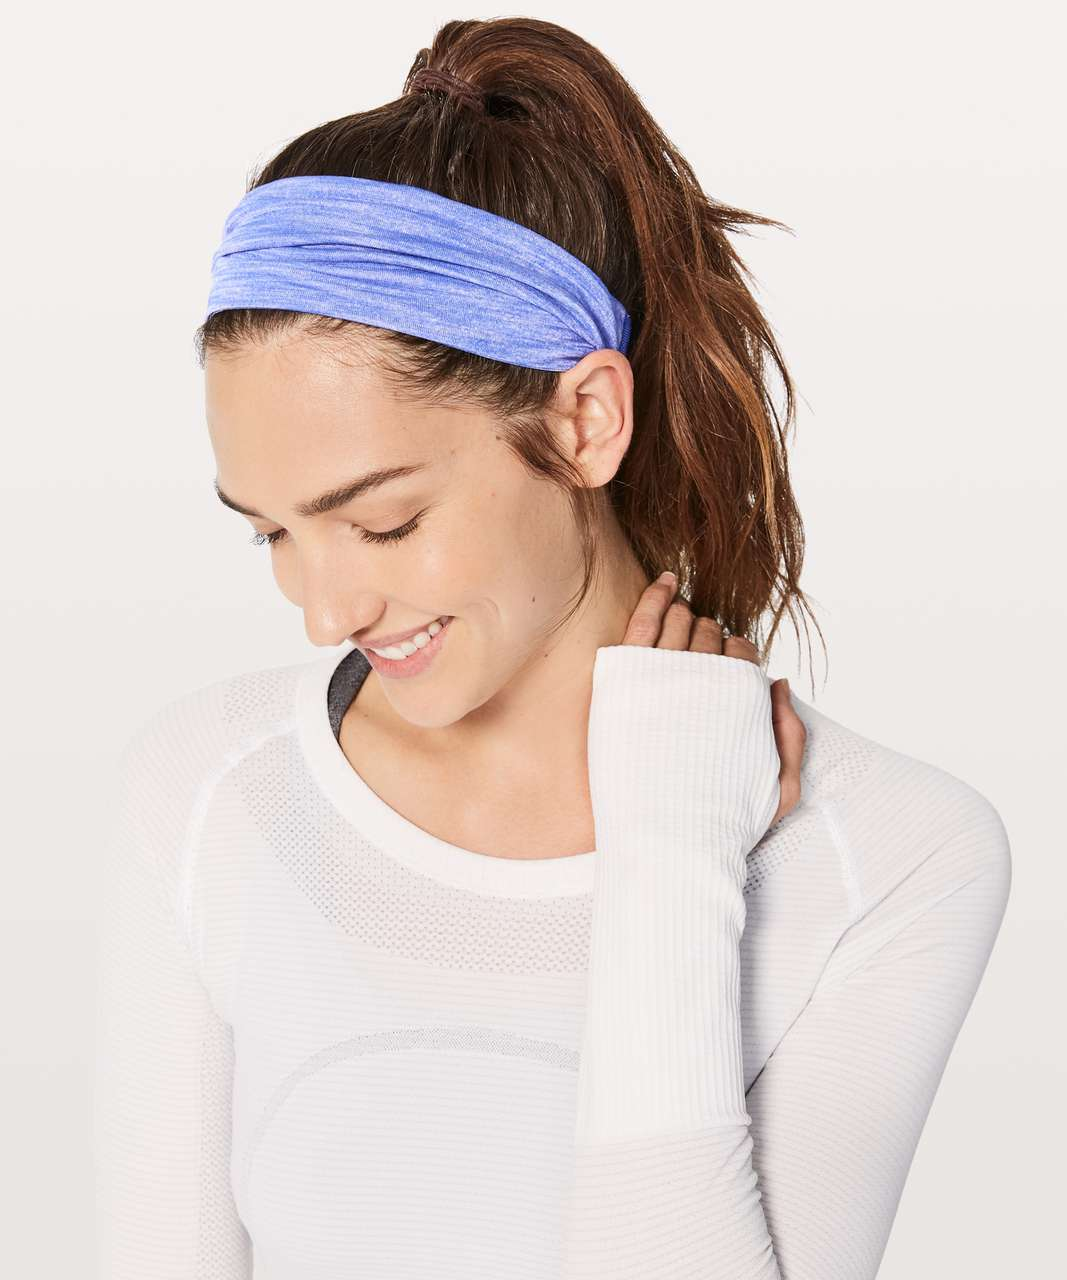 Lululemon Fringe Fighter Headband - Heathered Blazer Blue / Blazer Blue